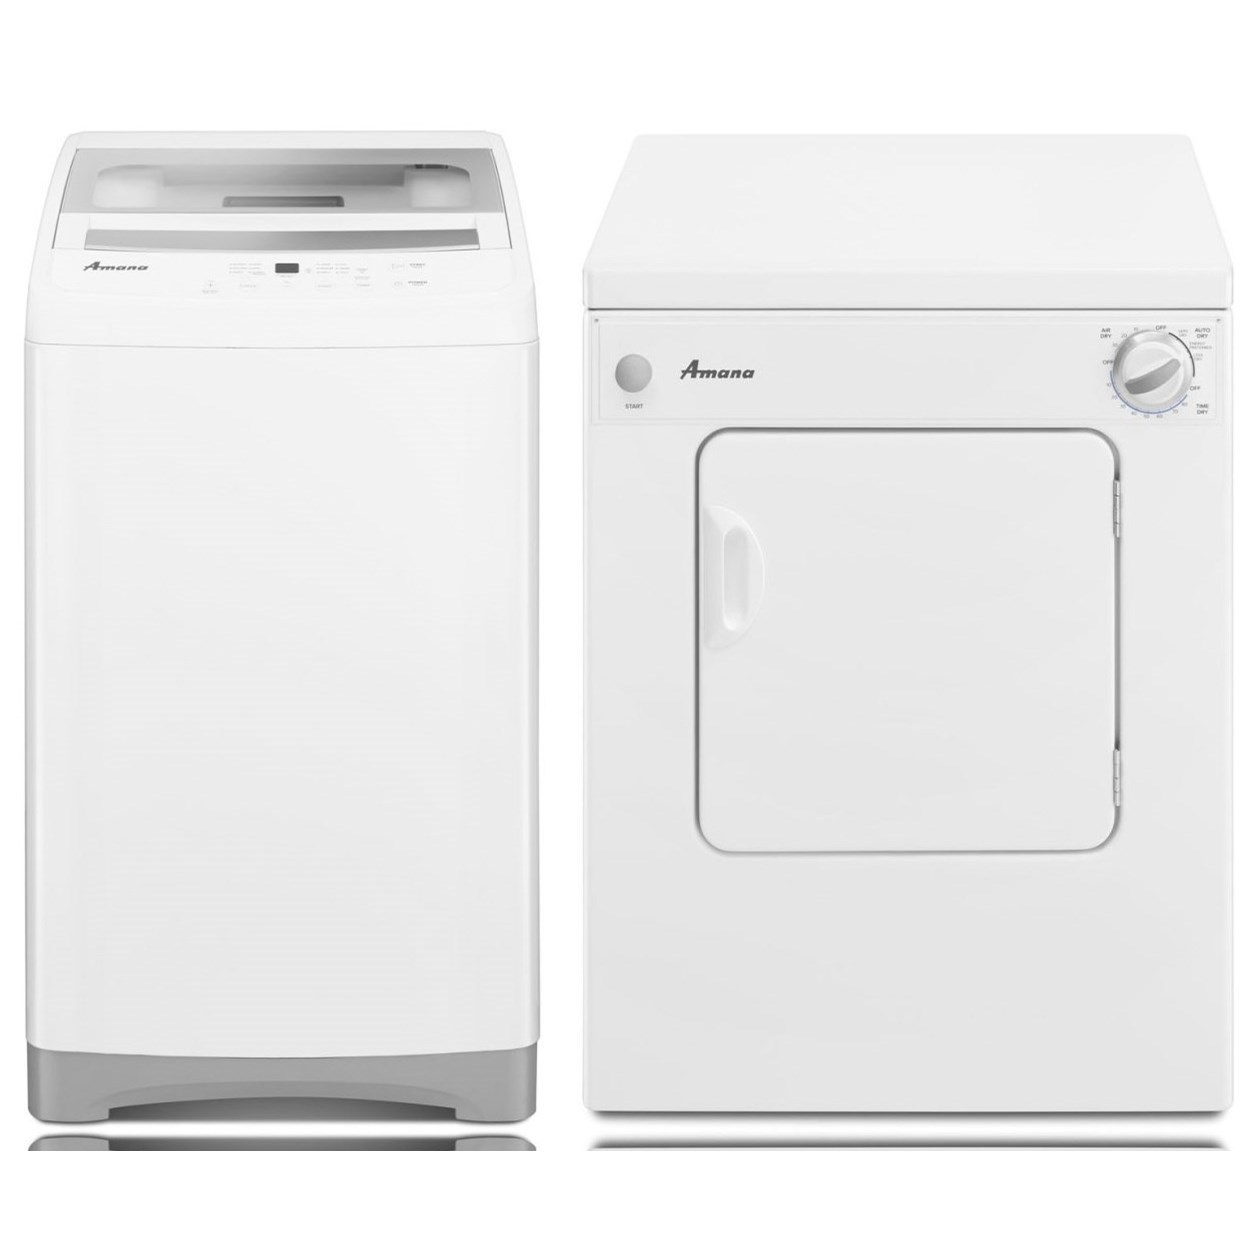 Amana Washer and Dryer Sets Portable Washer and Dryer Set - Item Number: NTC3500FW+NEC3120FW